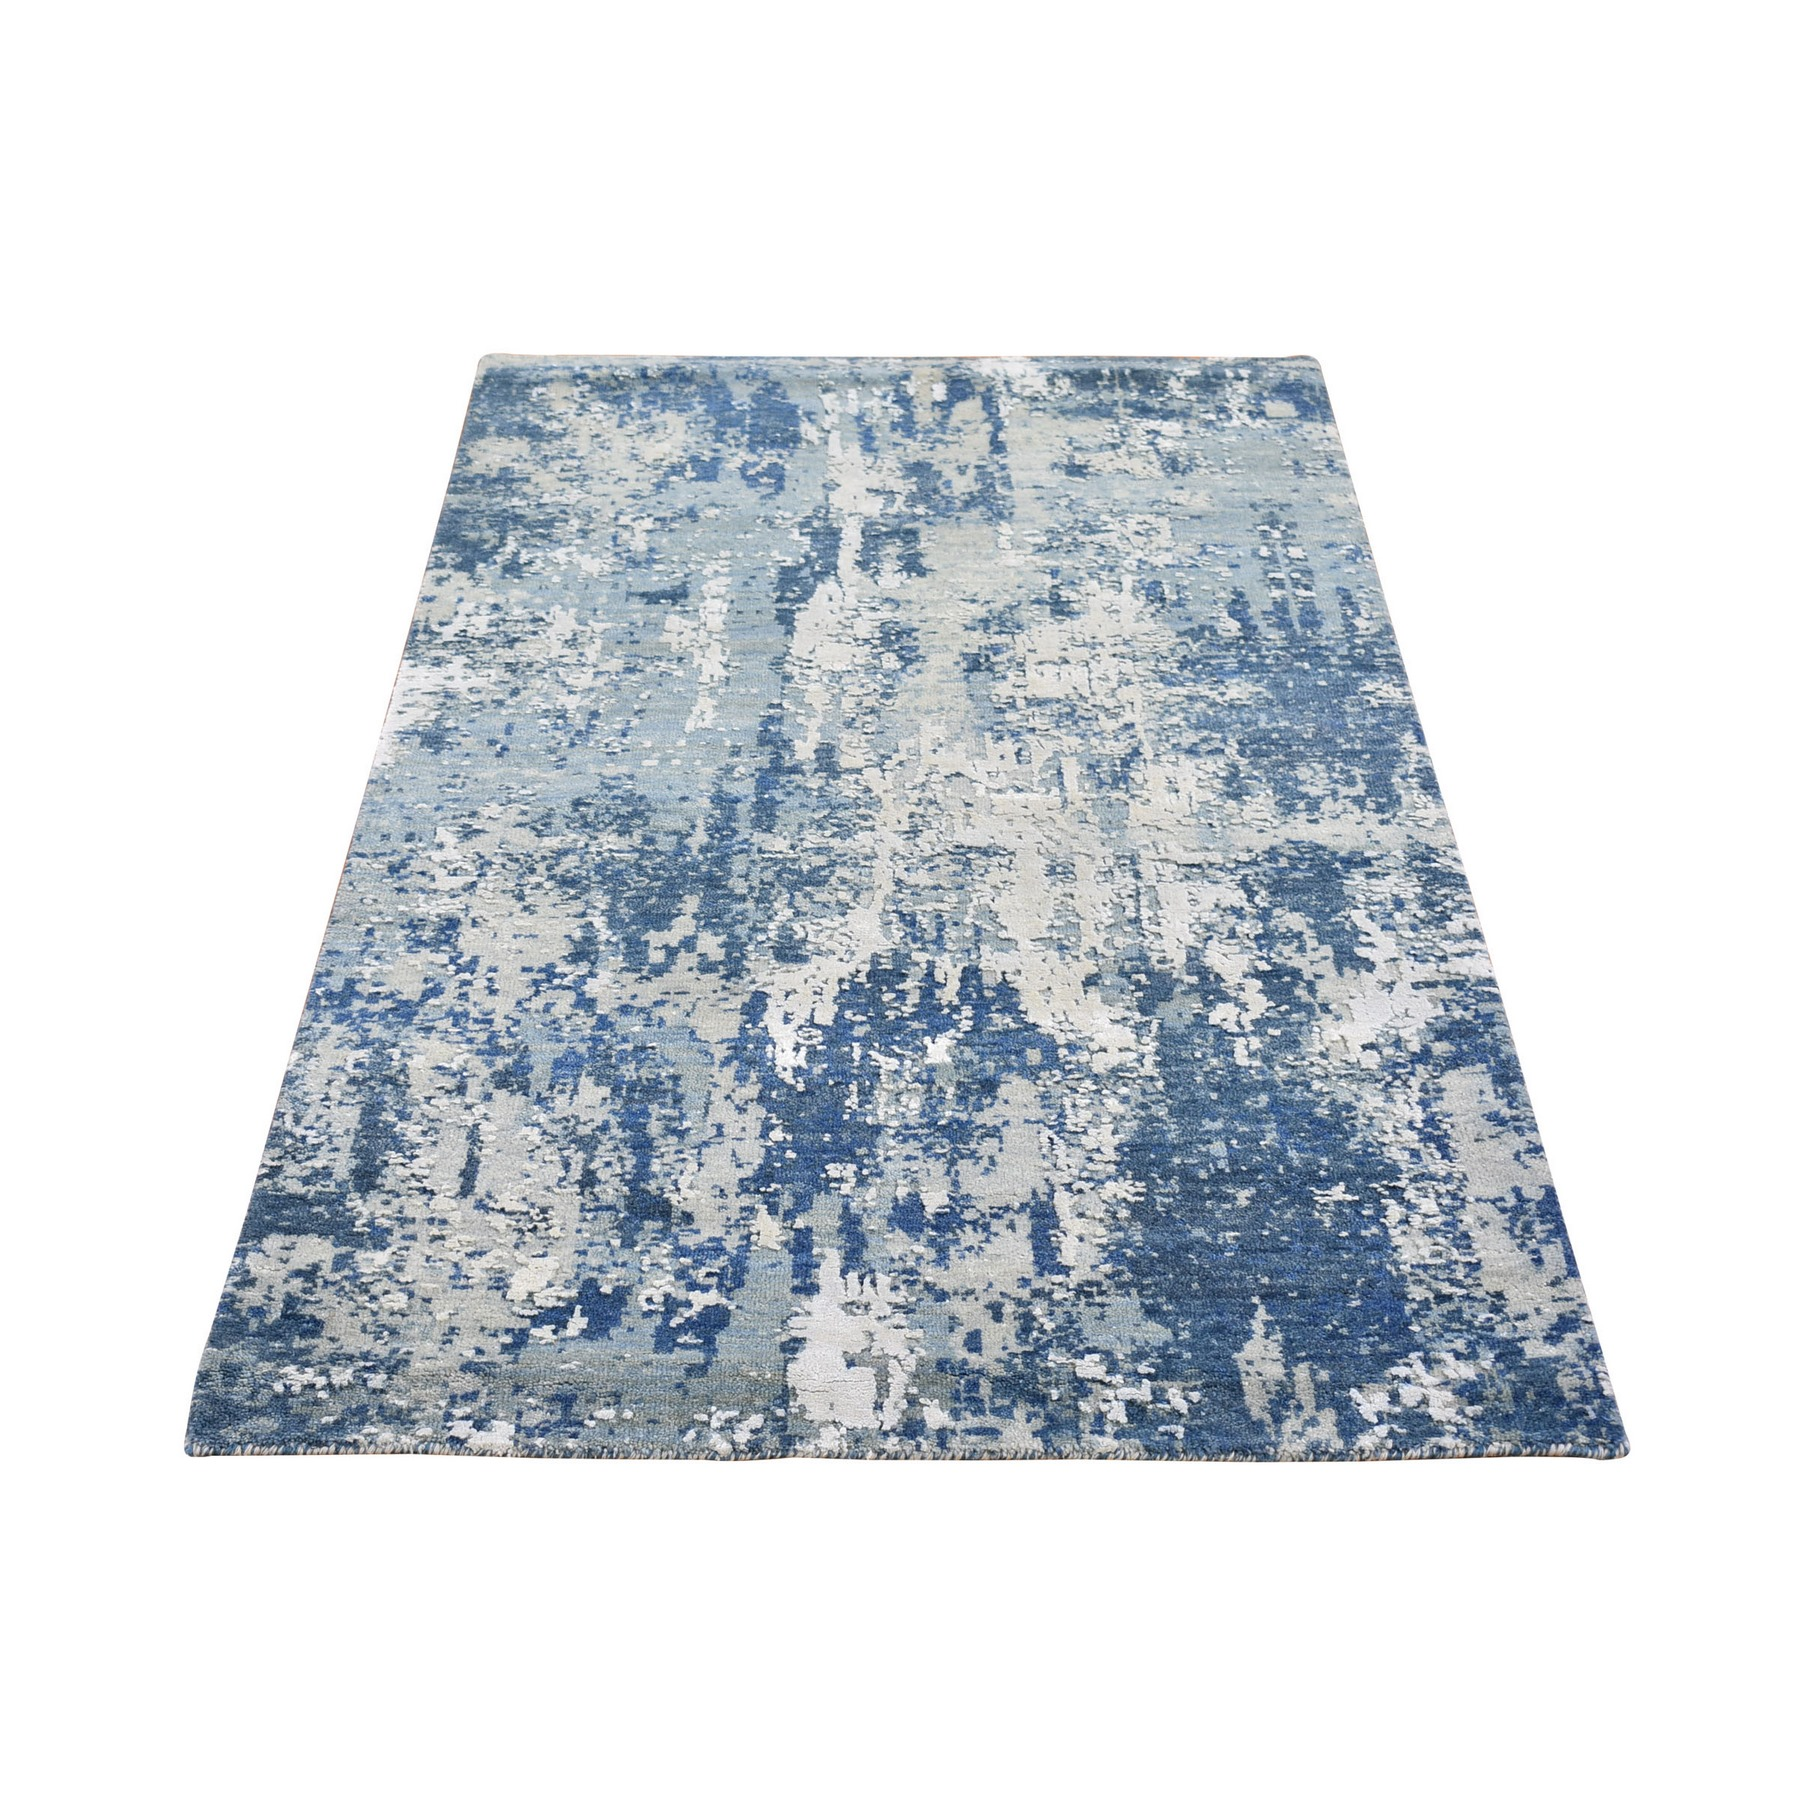 Mid Century Modern Collection Hand Knotted Blue Rug No: 1133540